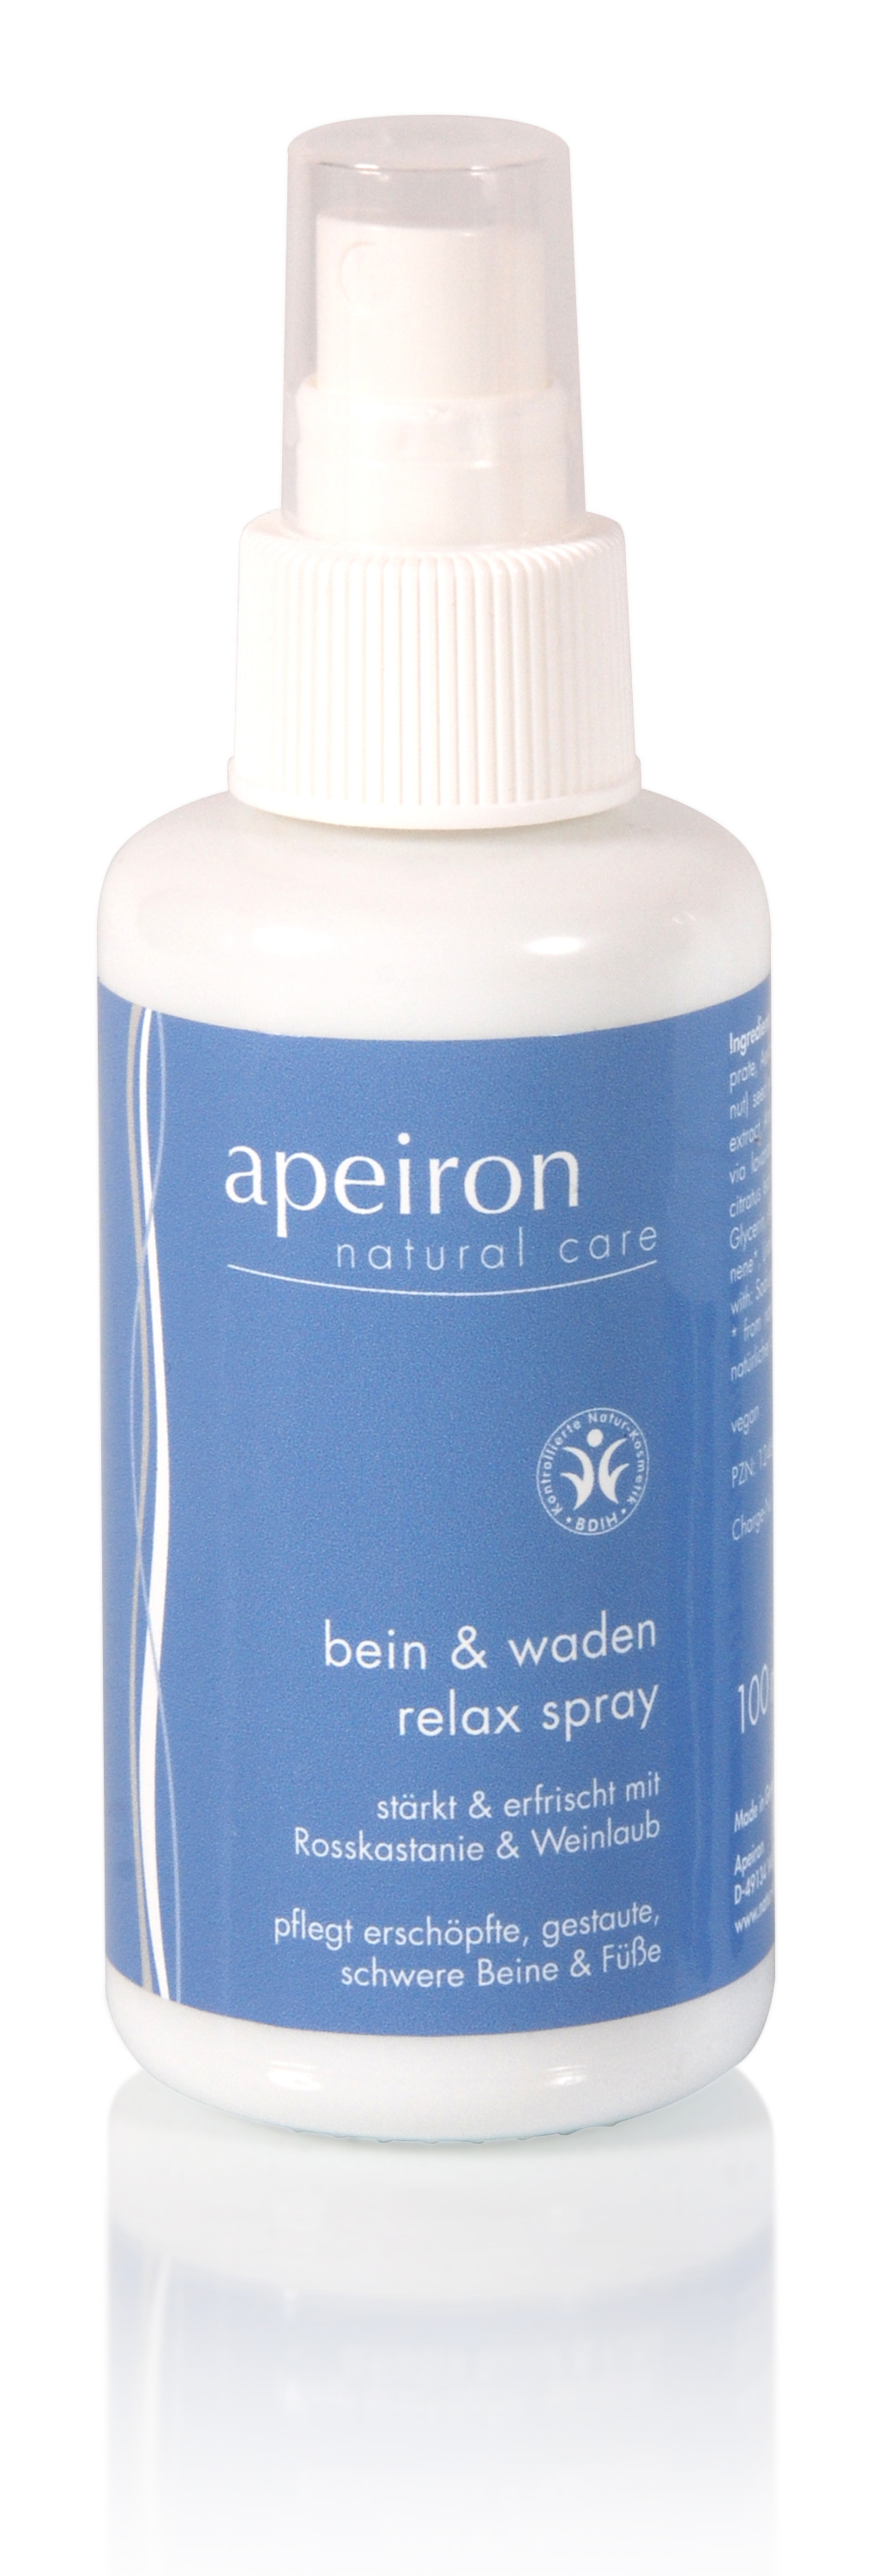 Bein & Waden Relax Spray